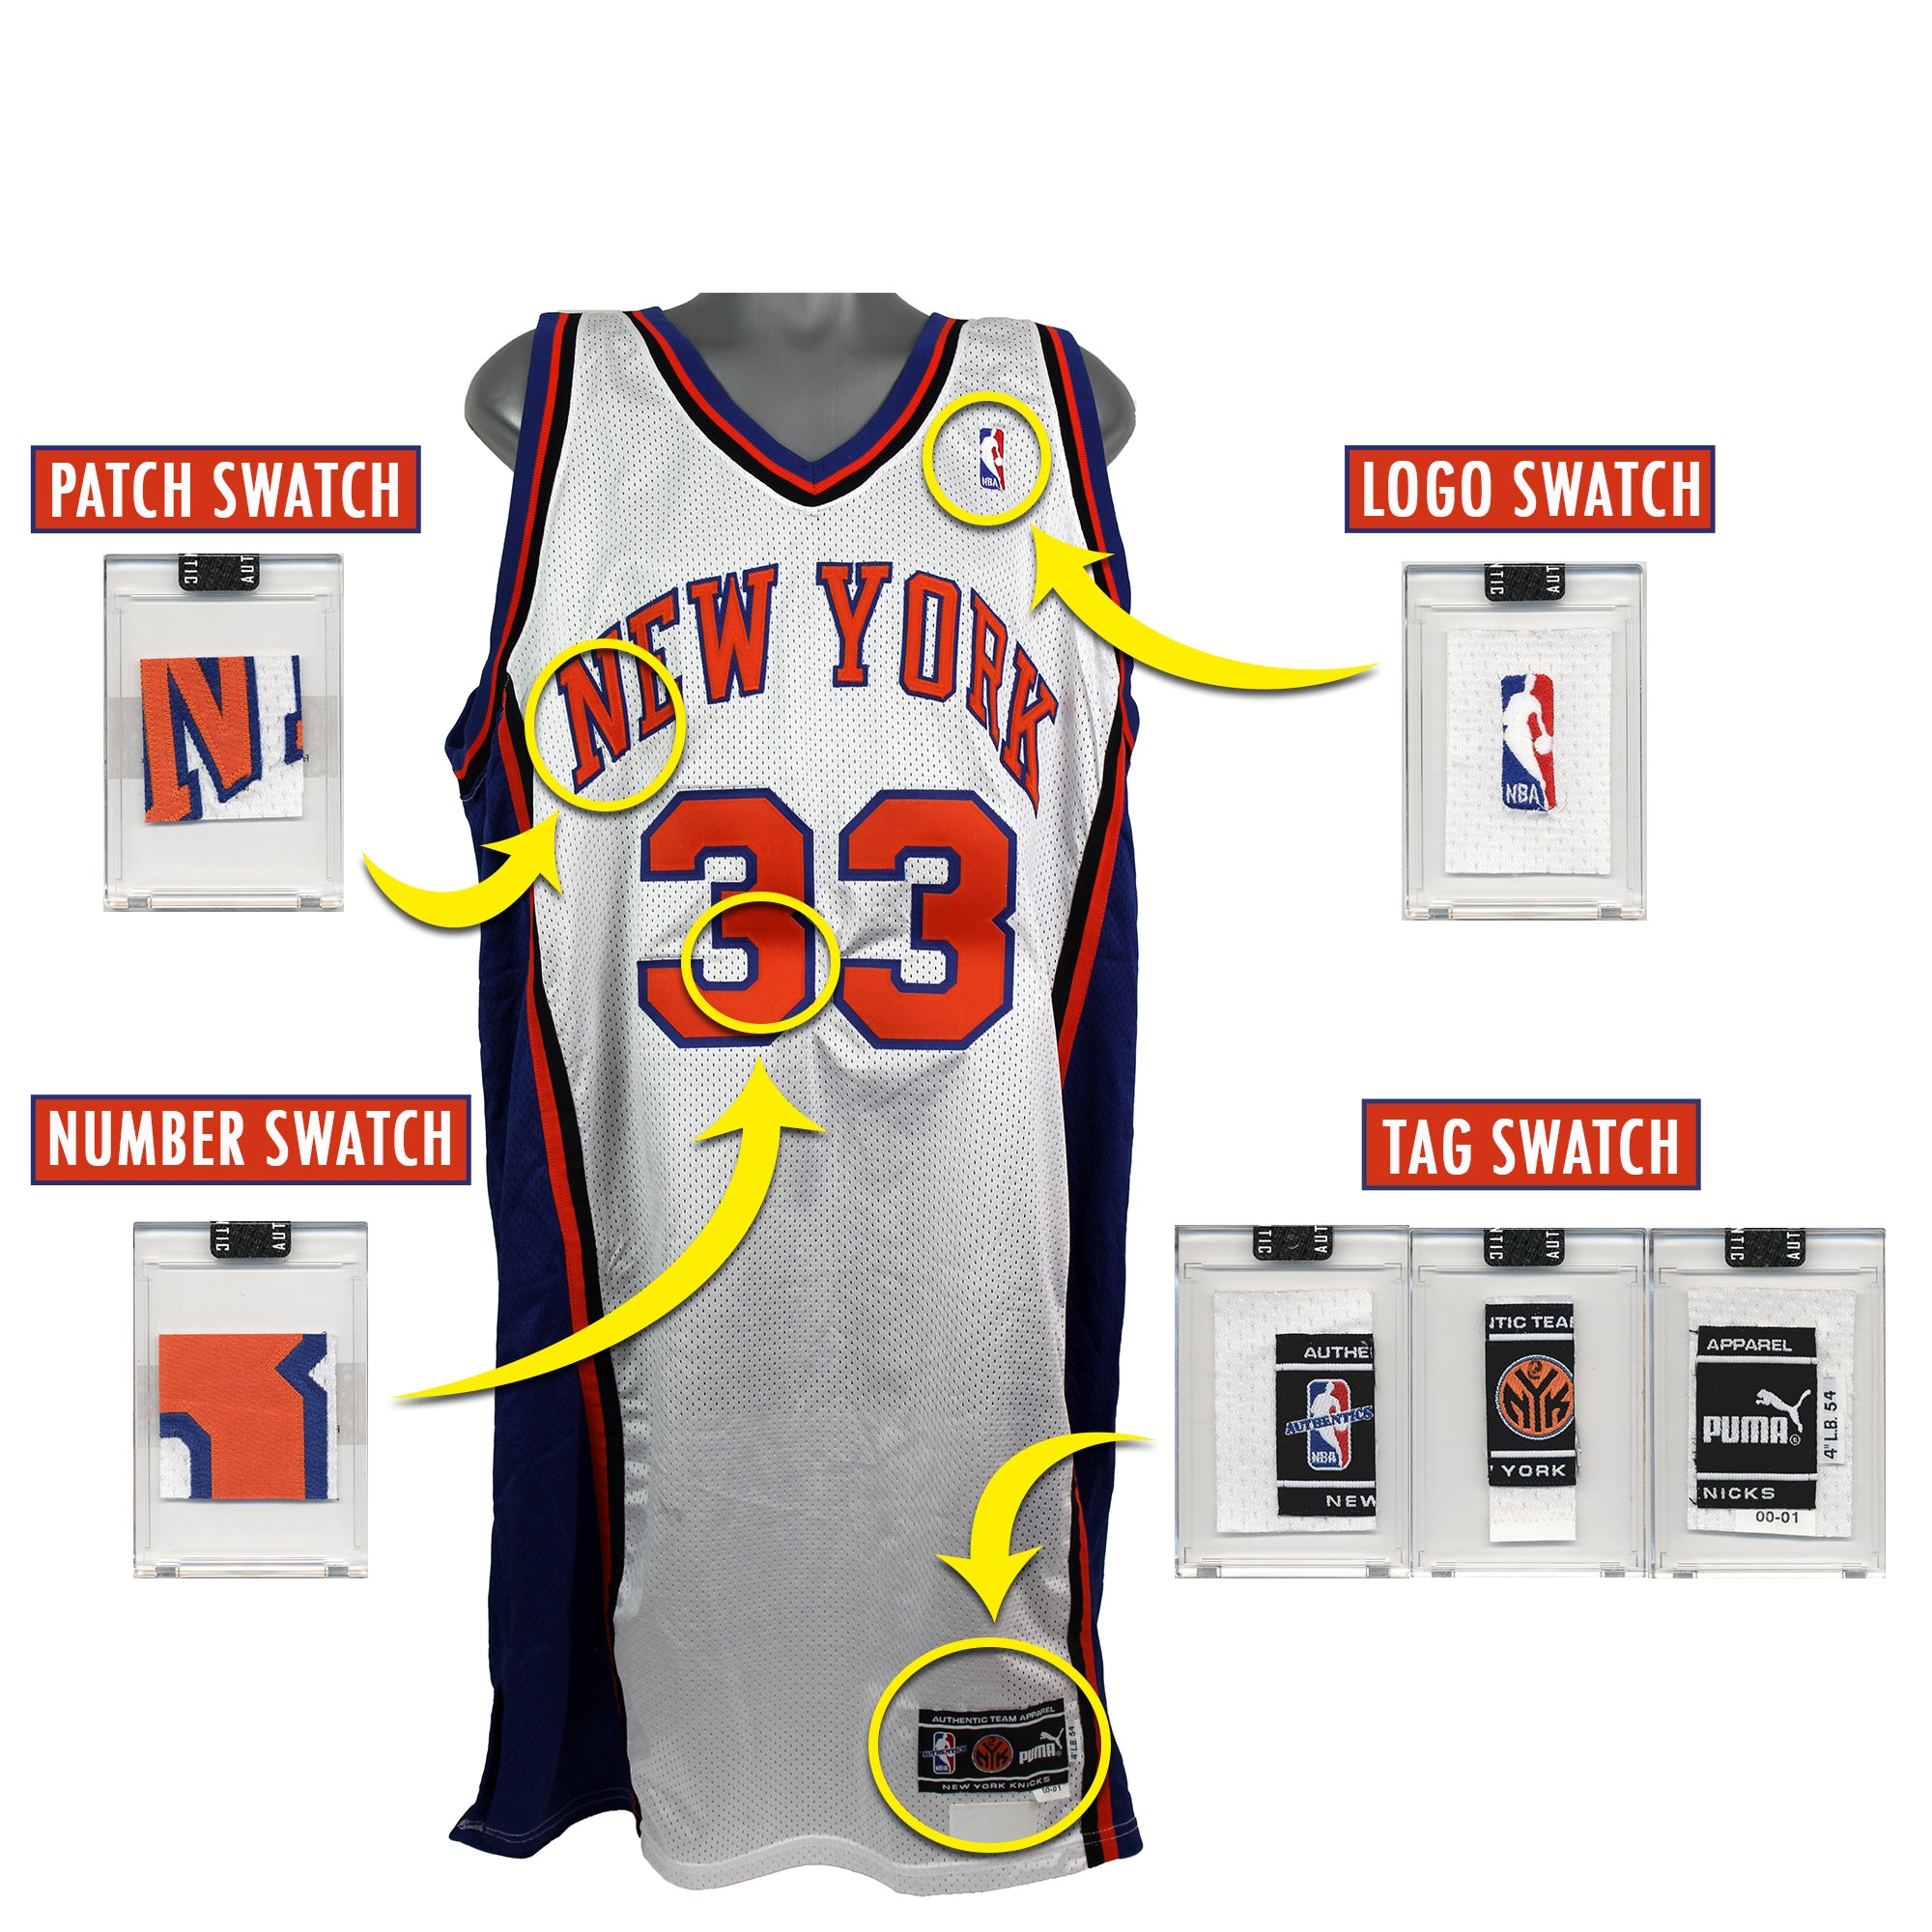 Patrick Ewing 2000-01 New York Knicks Game Worn Jersey Mystery Sealed Swatch Box